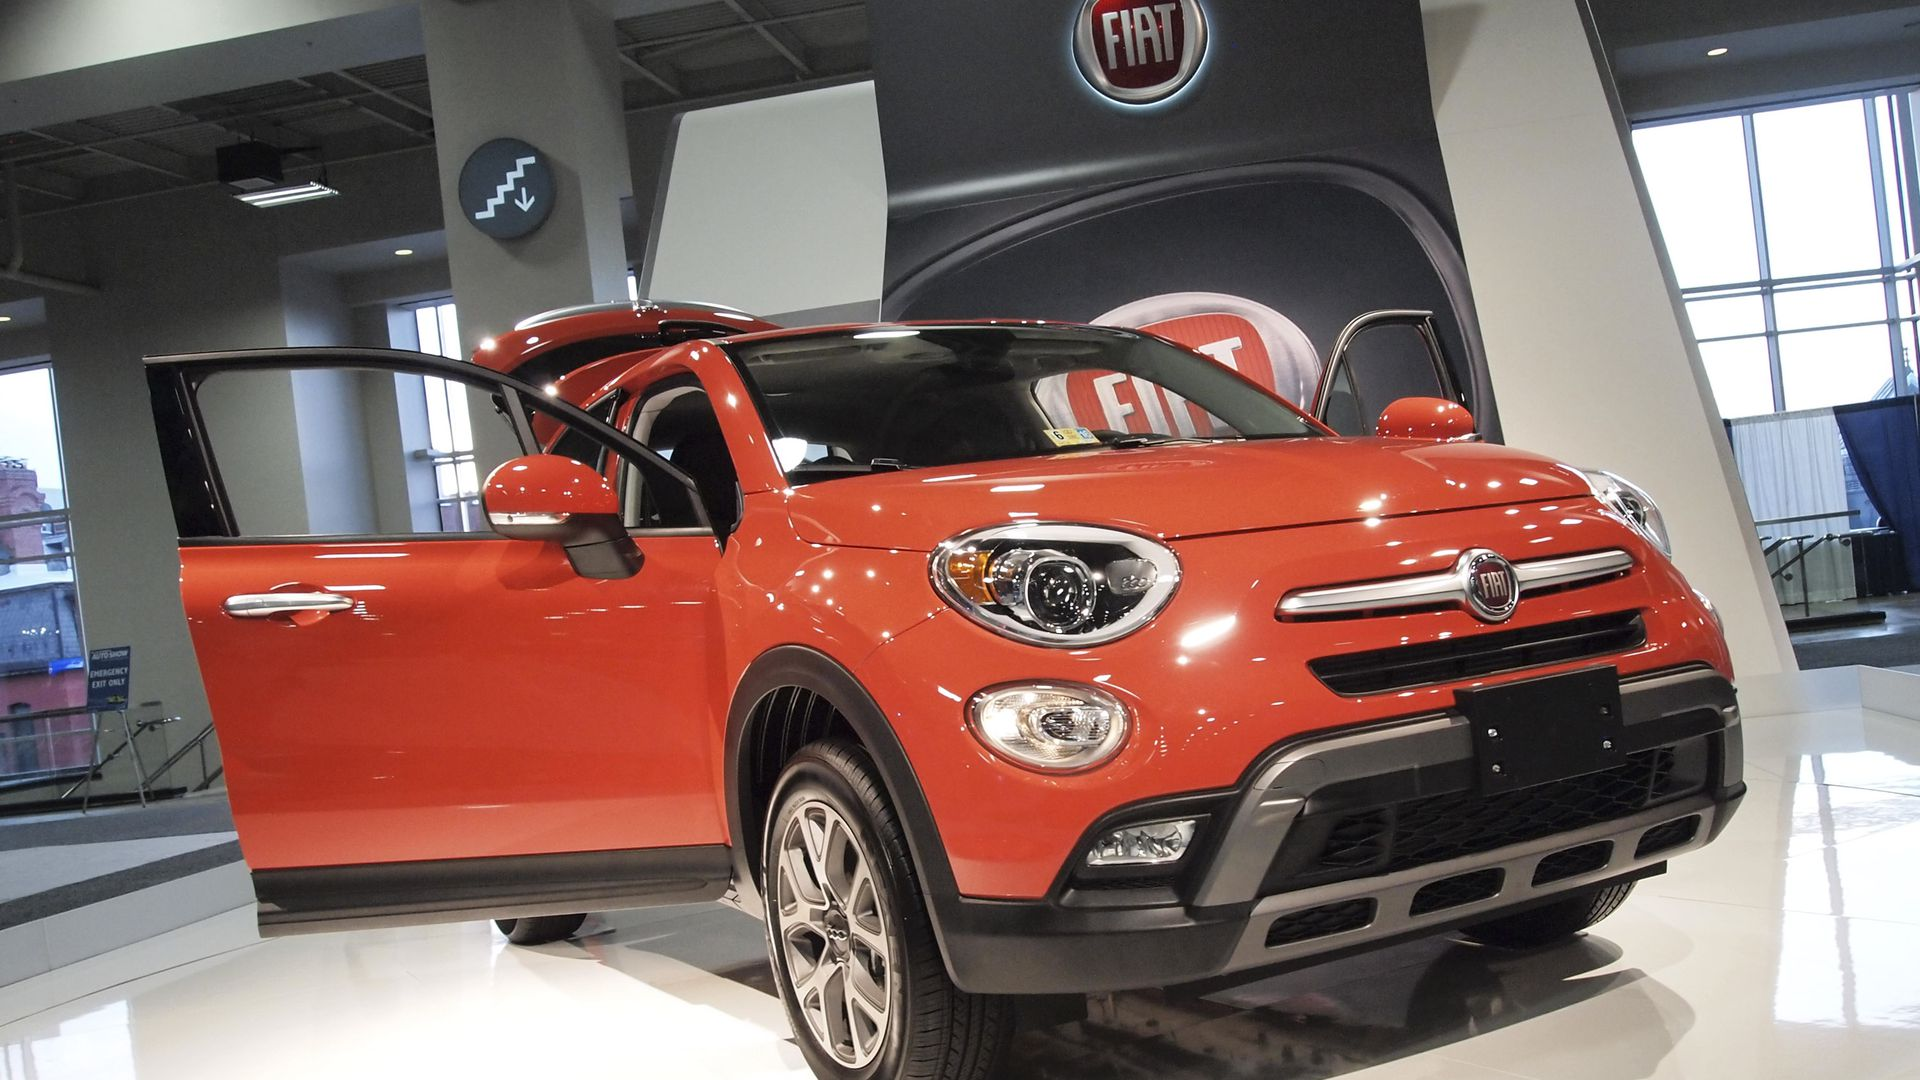 A 2016 Fiat crossover is on display during the Washington Auto Show at the Washington Auto Show in Washington DC on January 28, 2016.